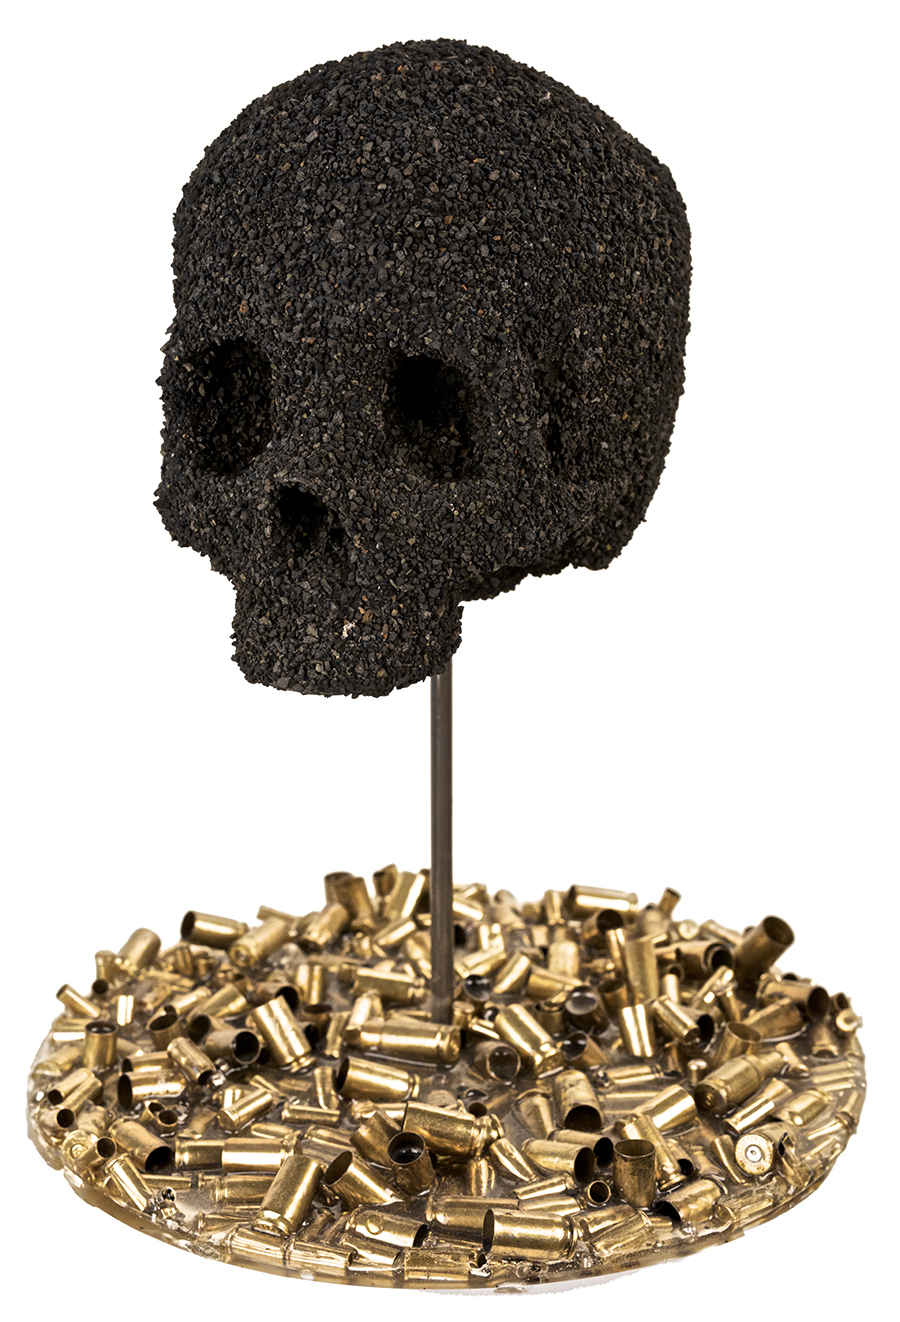 """""""REMNANTS OF THE HUMAN CONDITION""""  GUNPOWDER, CHARCOAL,RESIN, OIL,BULLET CASINGS"""